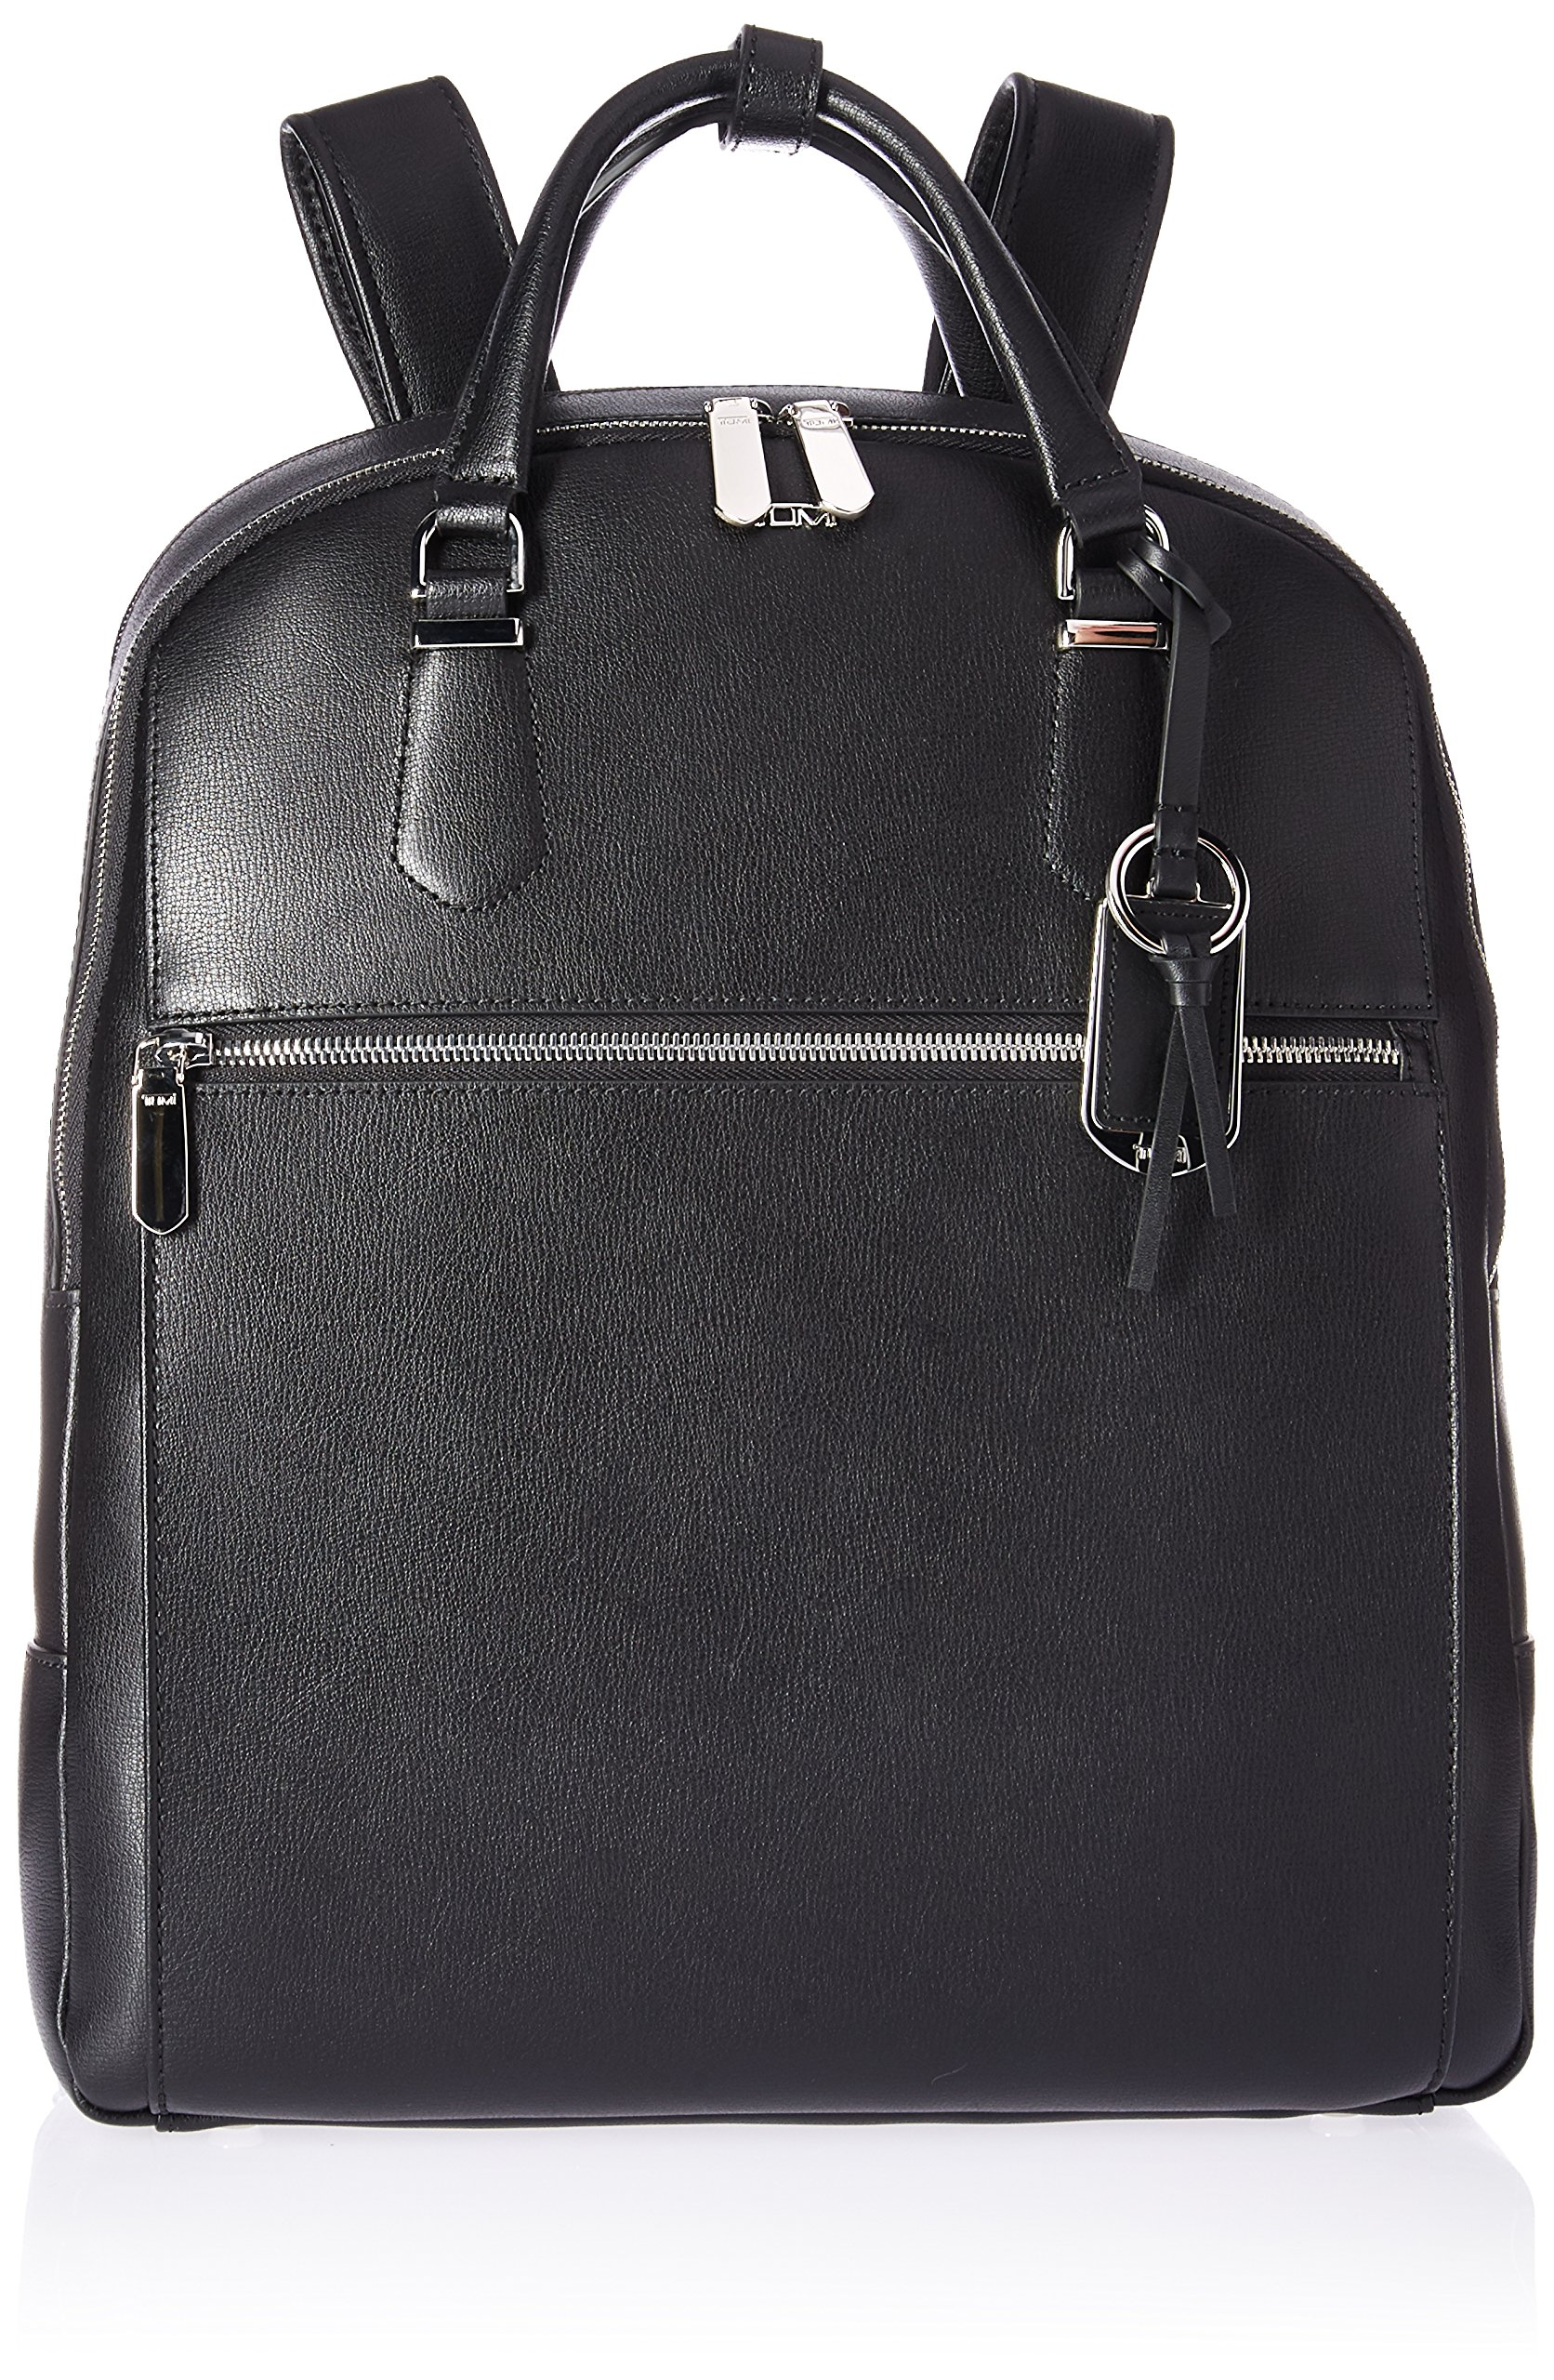 Tumi Women's Stanton Orion Laptop Backpack, Black, One Size